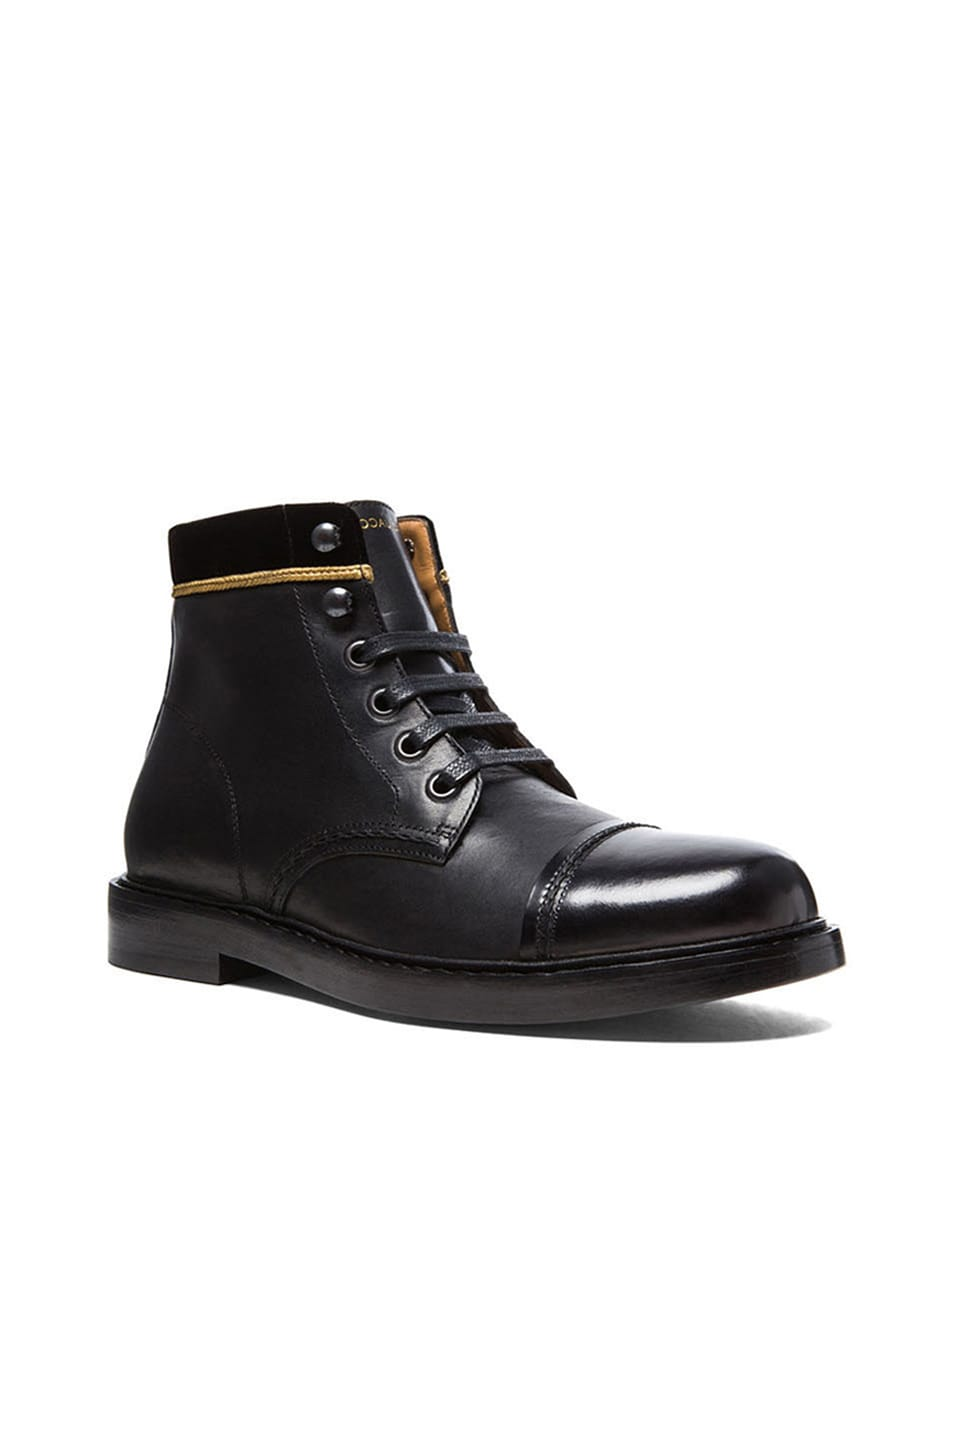 Marc Jacobs Lace Up Leather Boots In Multi Fwrd